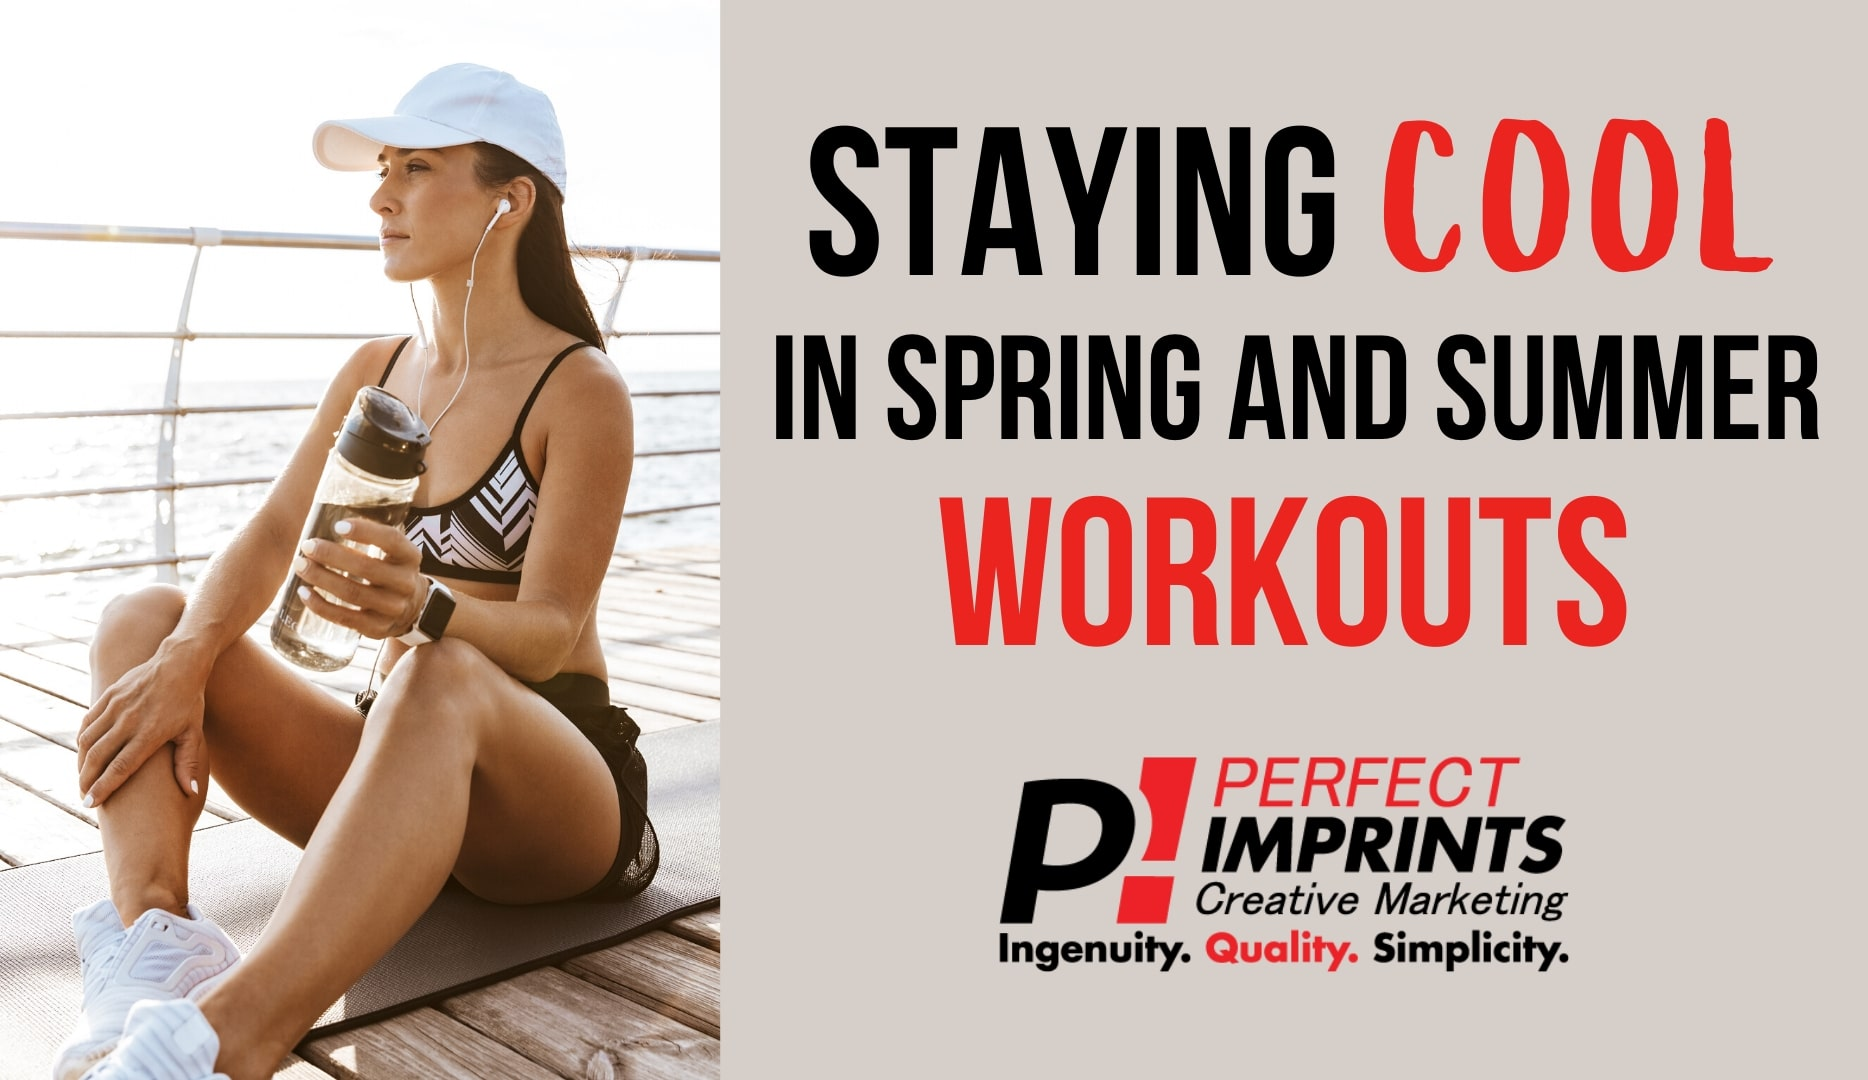 Staying Cool in Spring and Summer Workouts